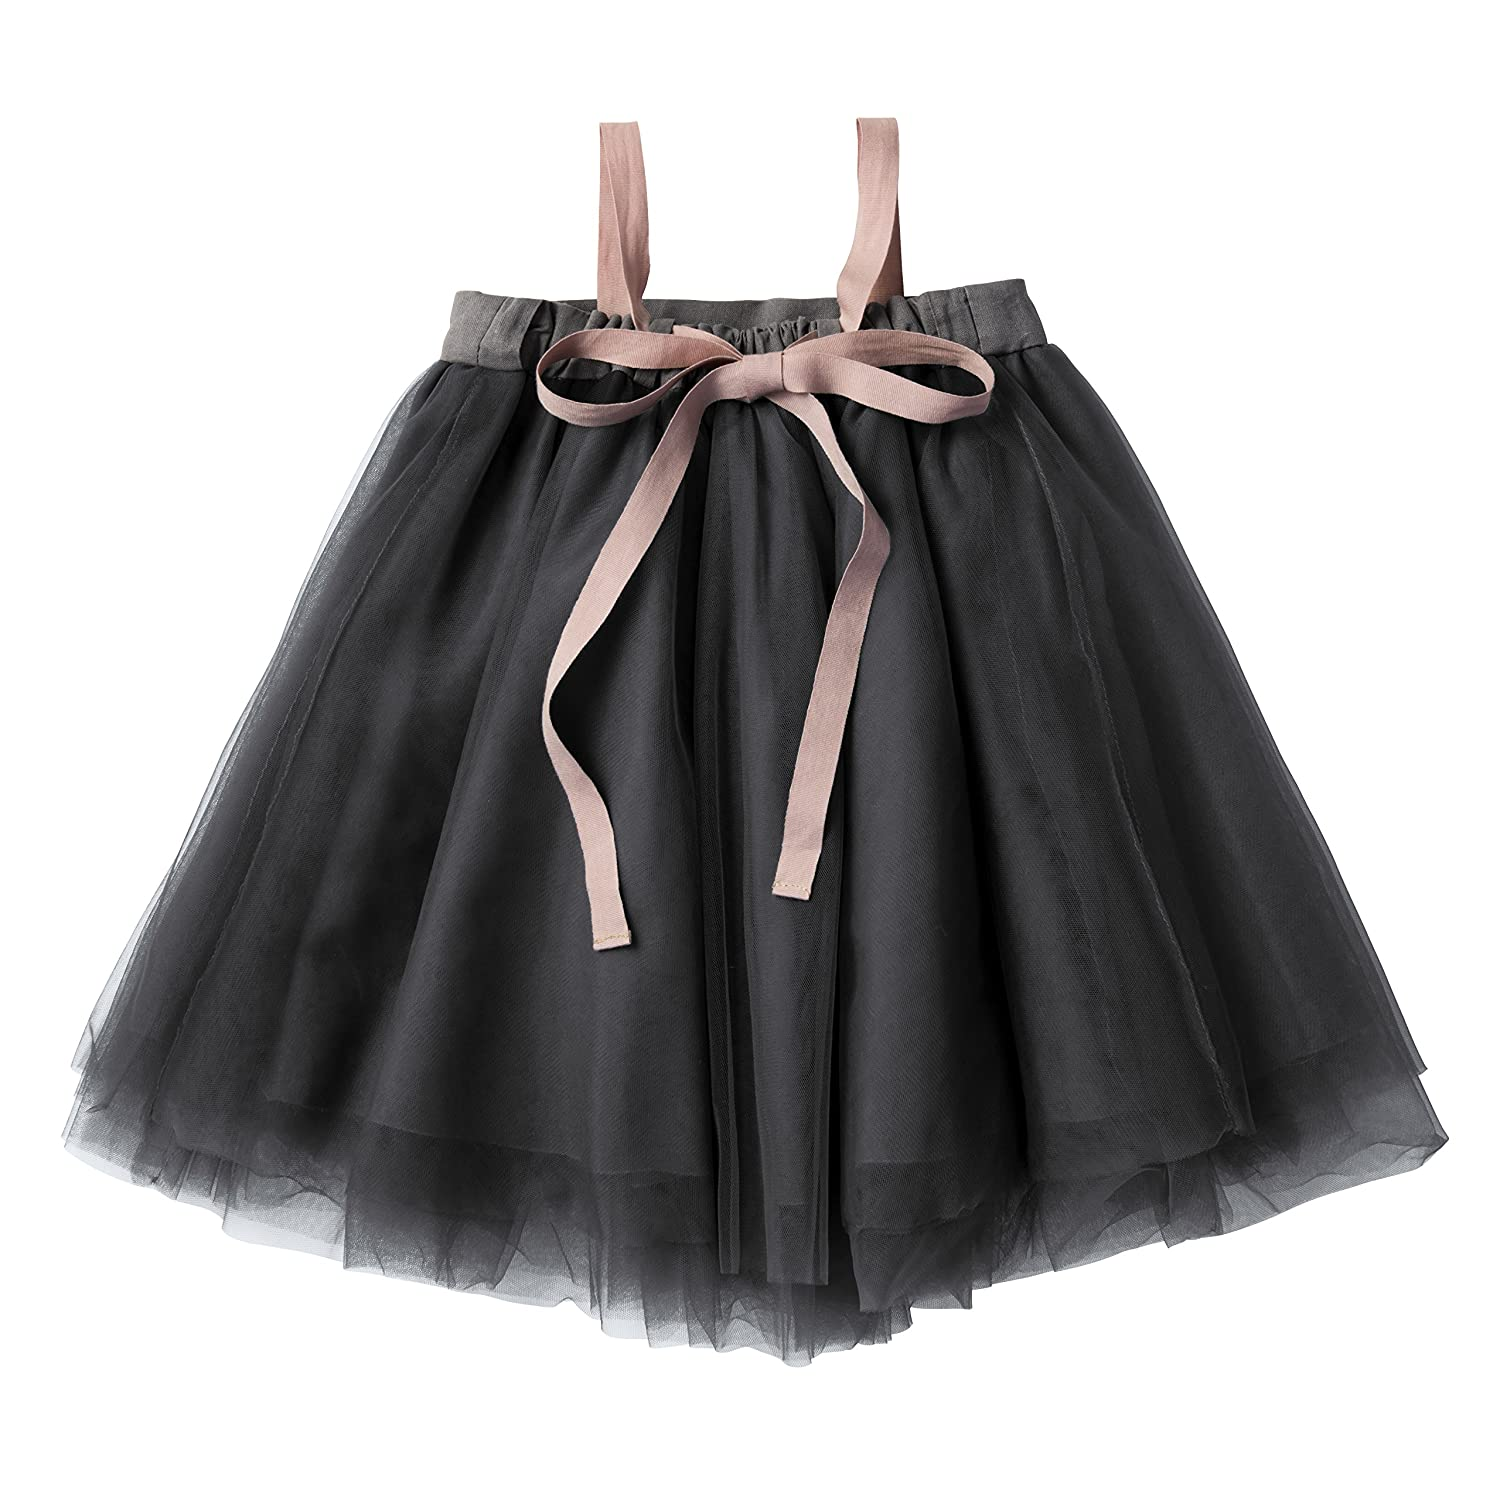 b1346a07b988 Amazon.com: MARLMARL Tutu Dress, Party Outfits, Birthday Gift, Baby Shower,  2-Way Skirts, for Newborn Baby to Kids Girls, Pink/Grey/Navy: Clothing